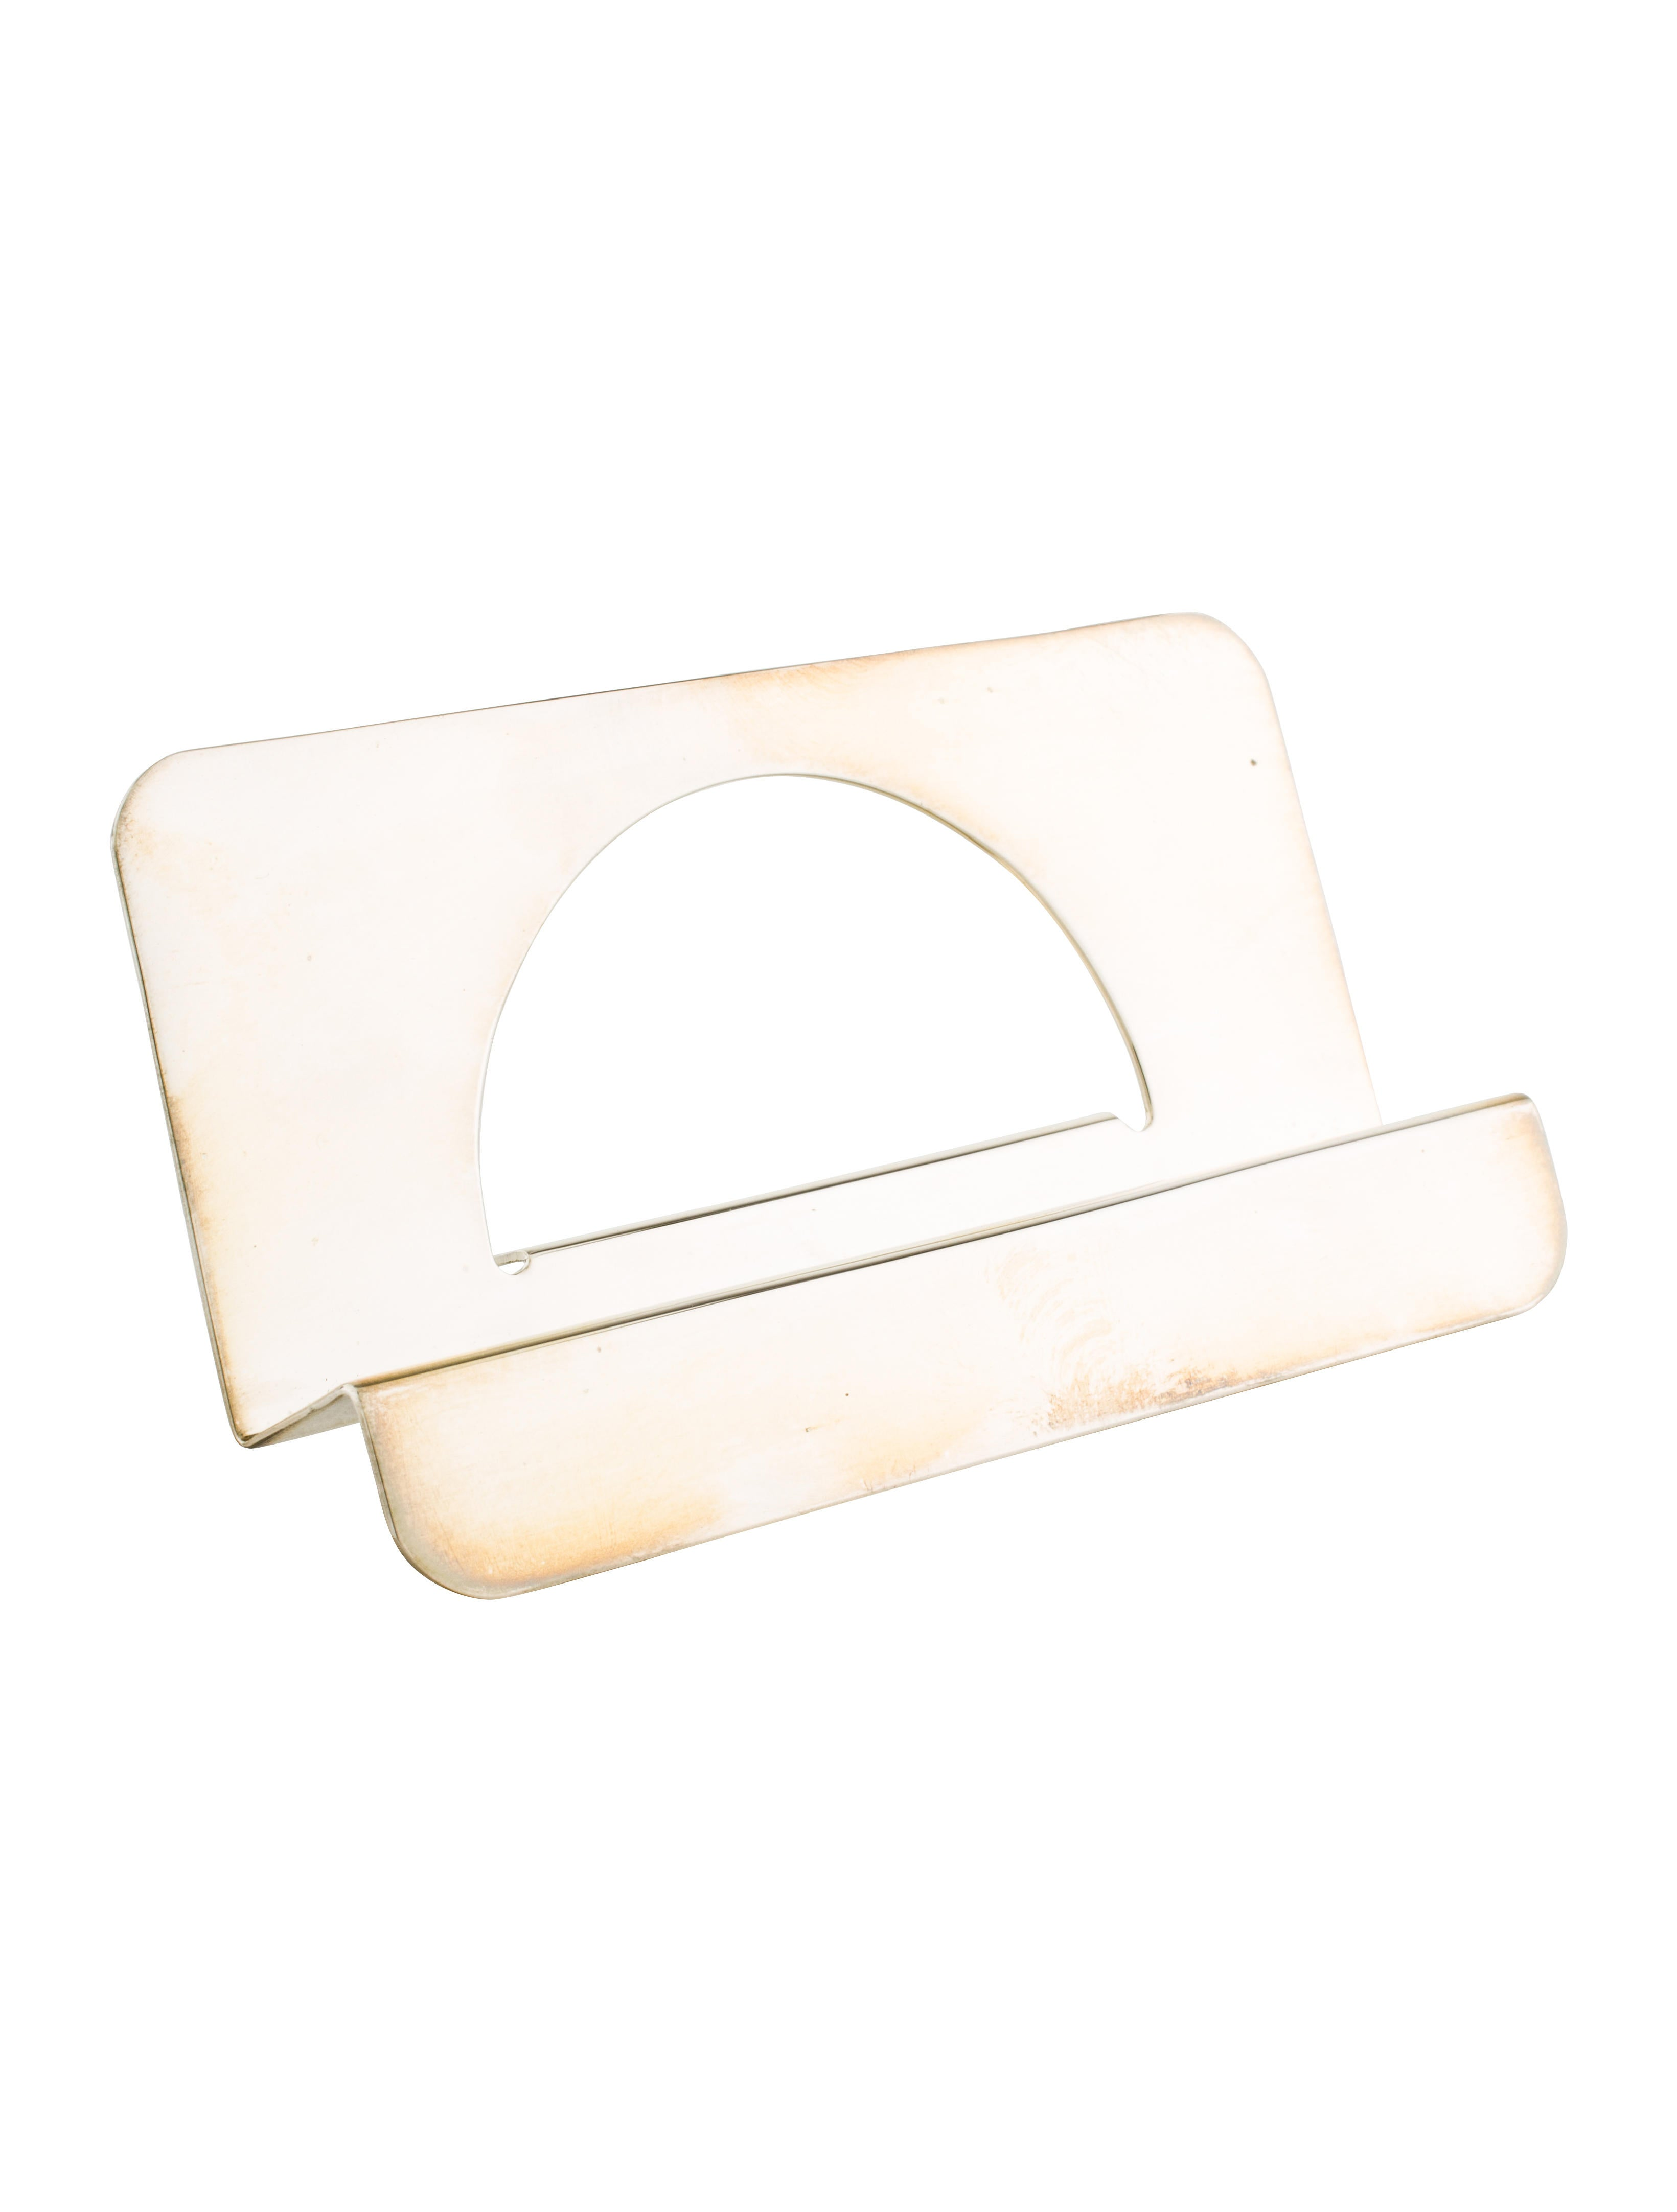 Tiffany co 925 business card holder decor and for Tiffany business card case